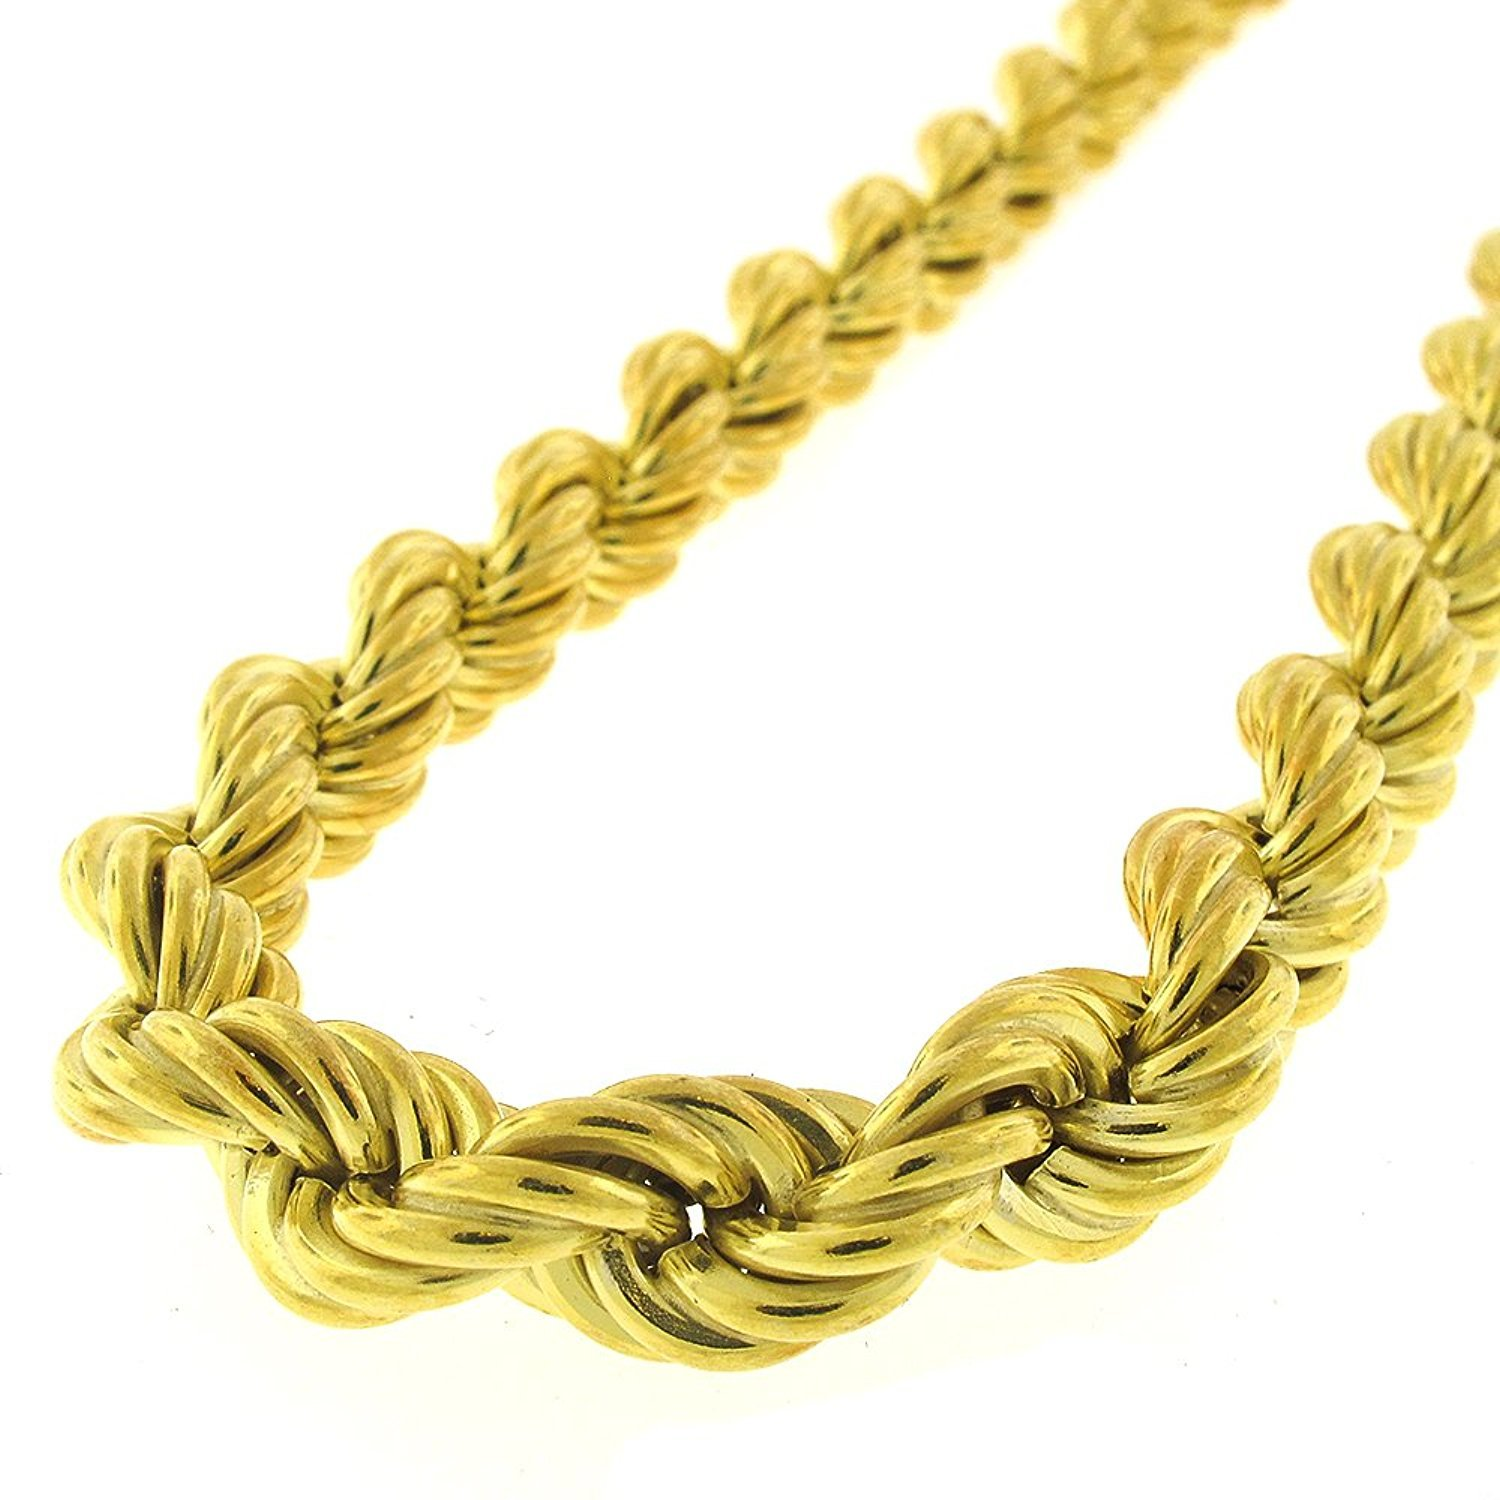 """18K Yellow Gold Plated Light-Weight Twisted 925 Necklace Chain 30/"""" 20/"""" Sterling Silver 9mm Hollow Rope Braided Link"""